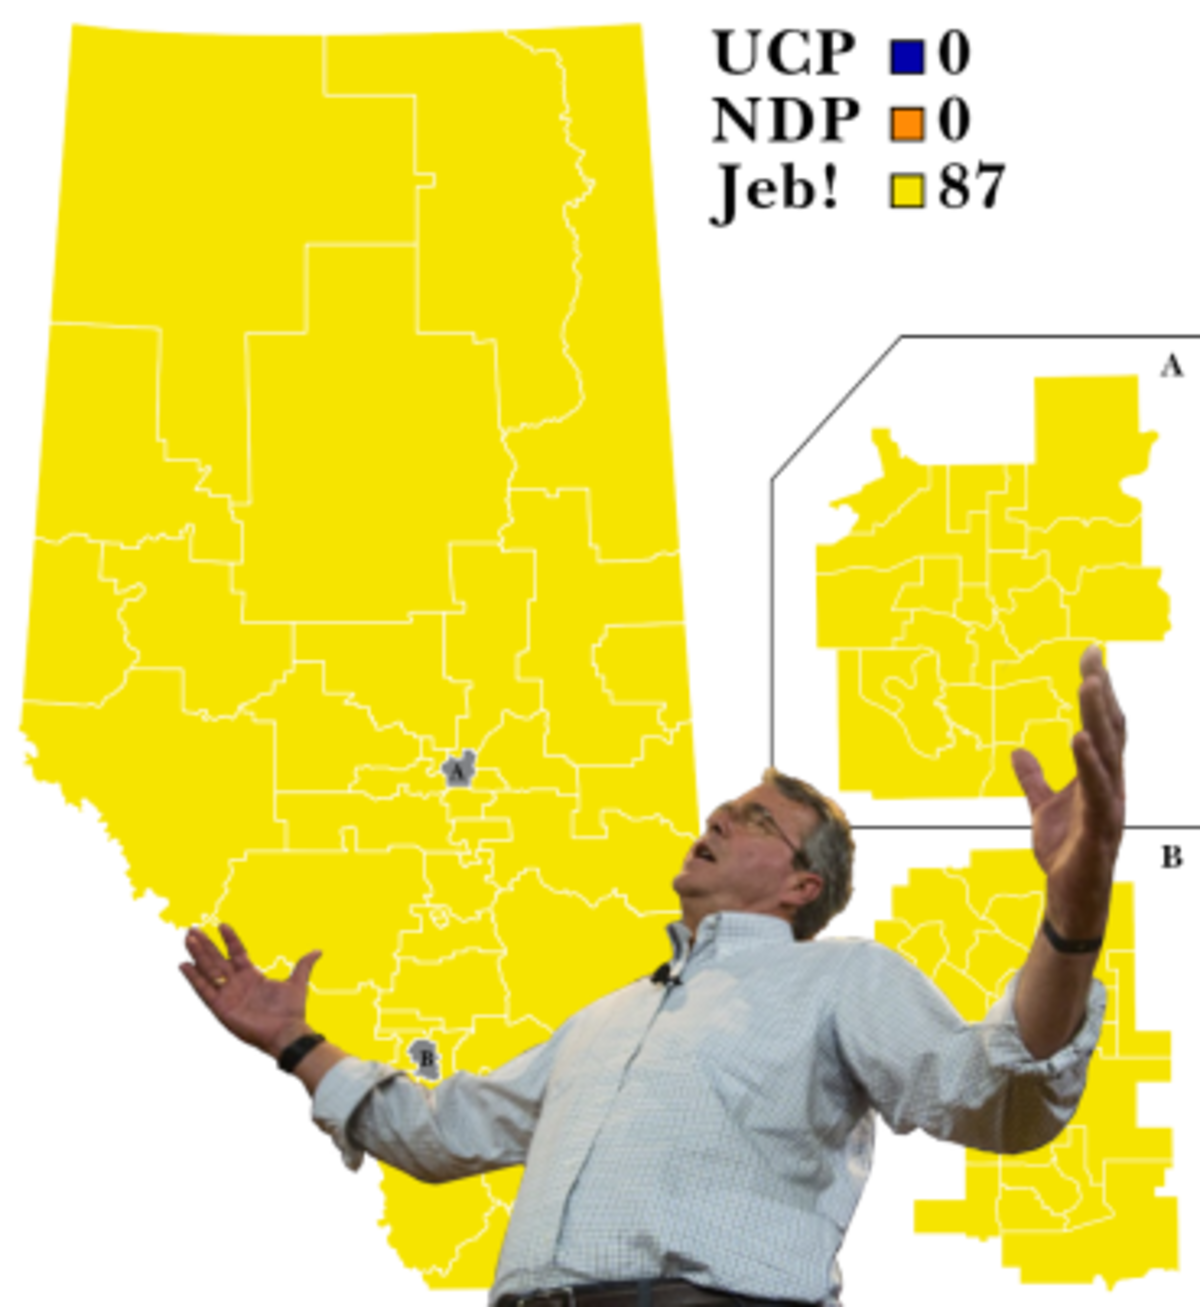 WE DID IT BOYS THE NDP IS OUT!!!!!!. .. Plz explan